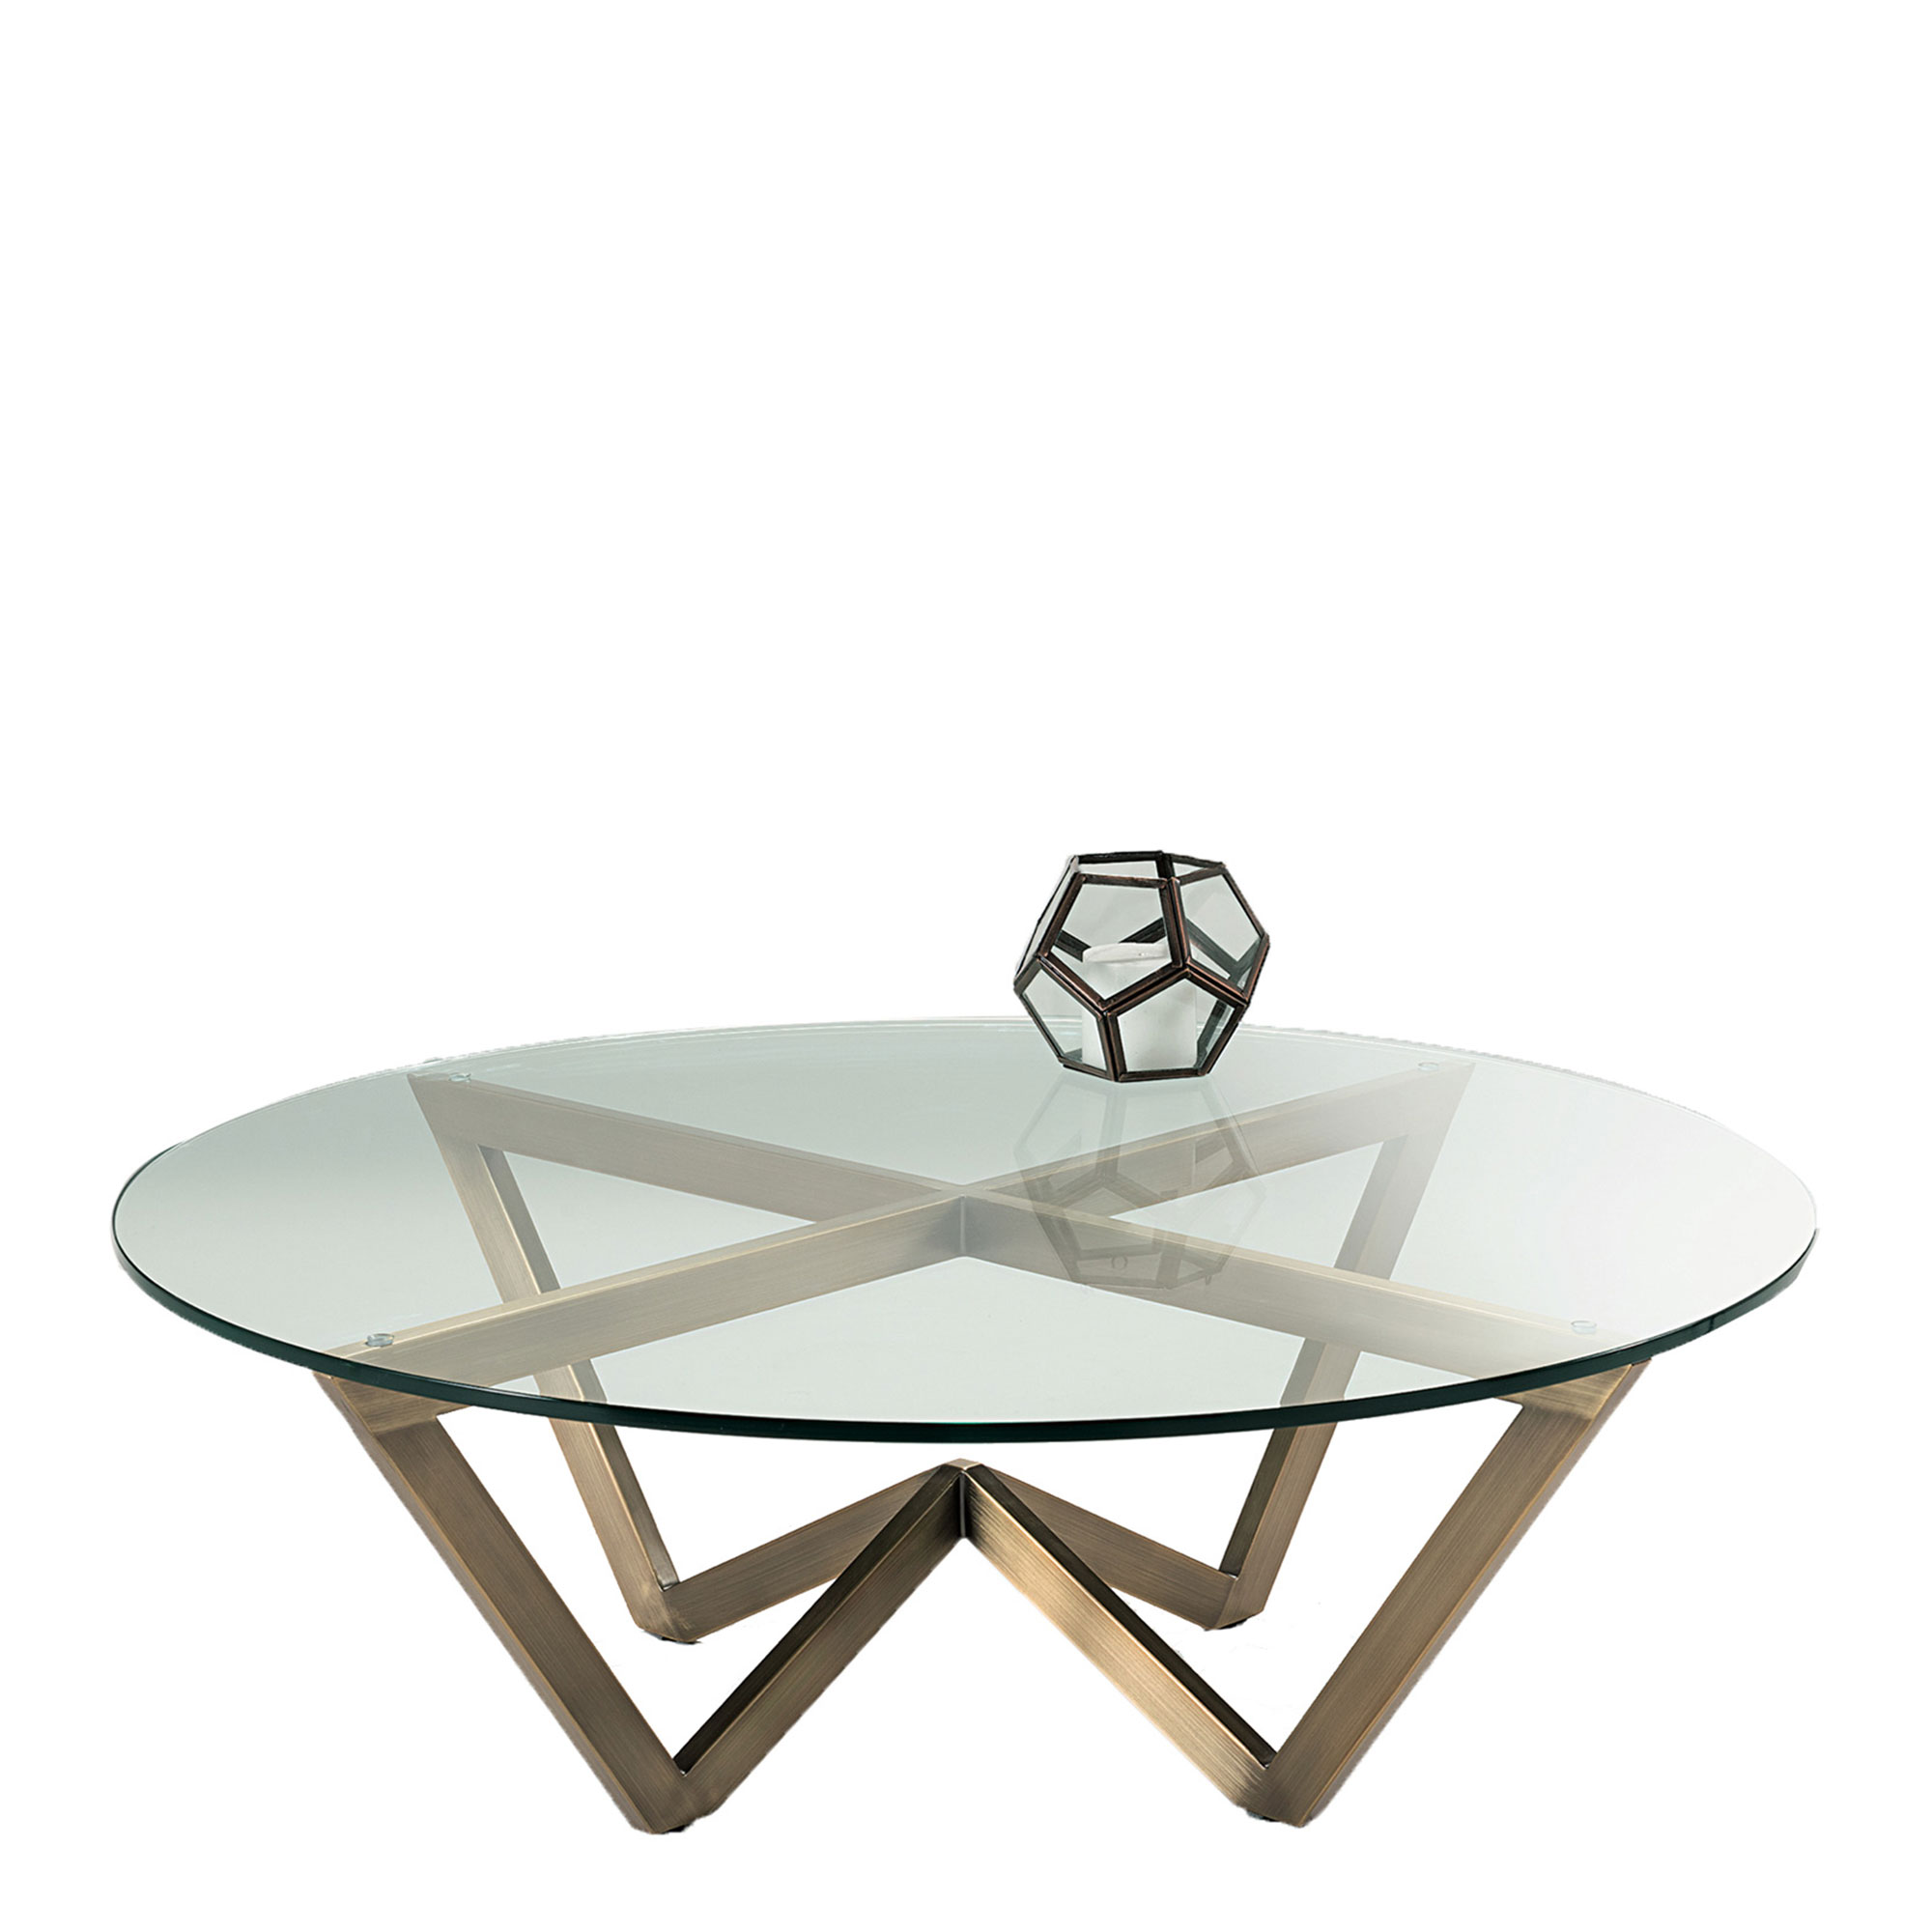 Reflex - Circular Glass Top Coffee Table with Brushed ...